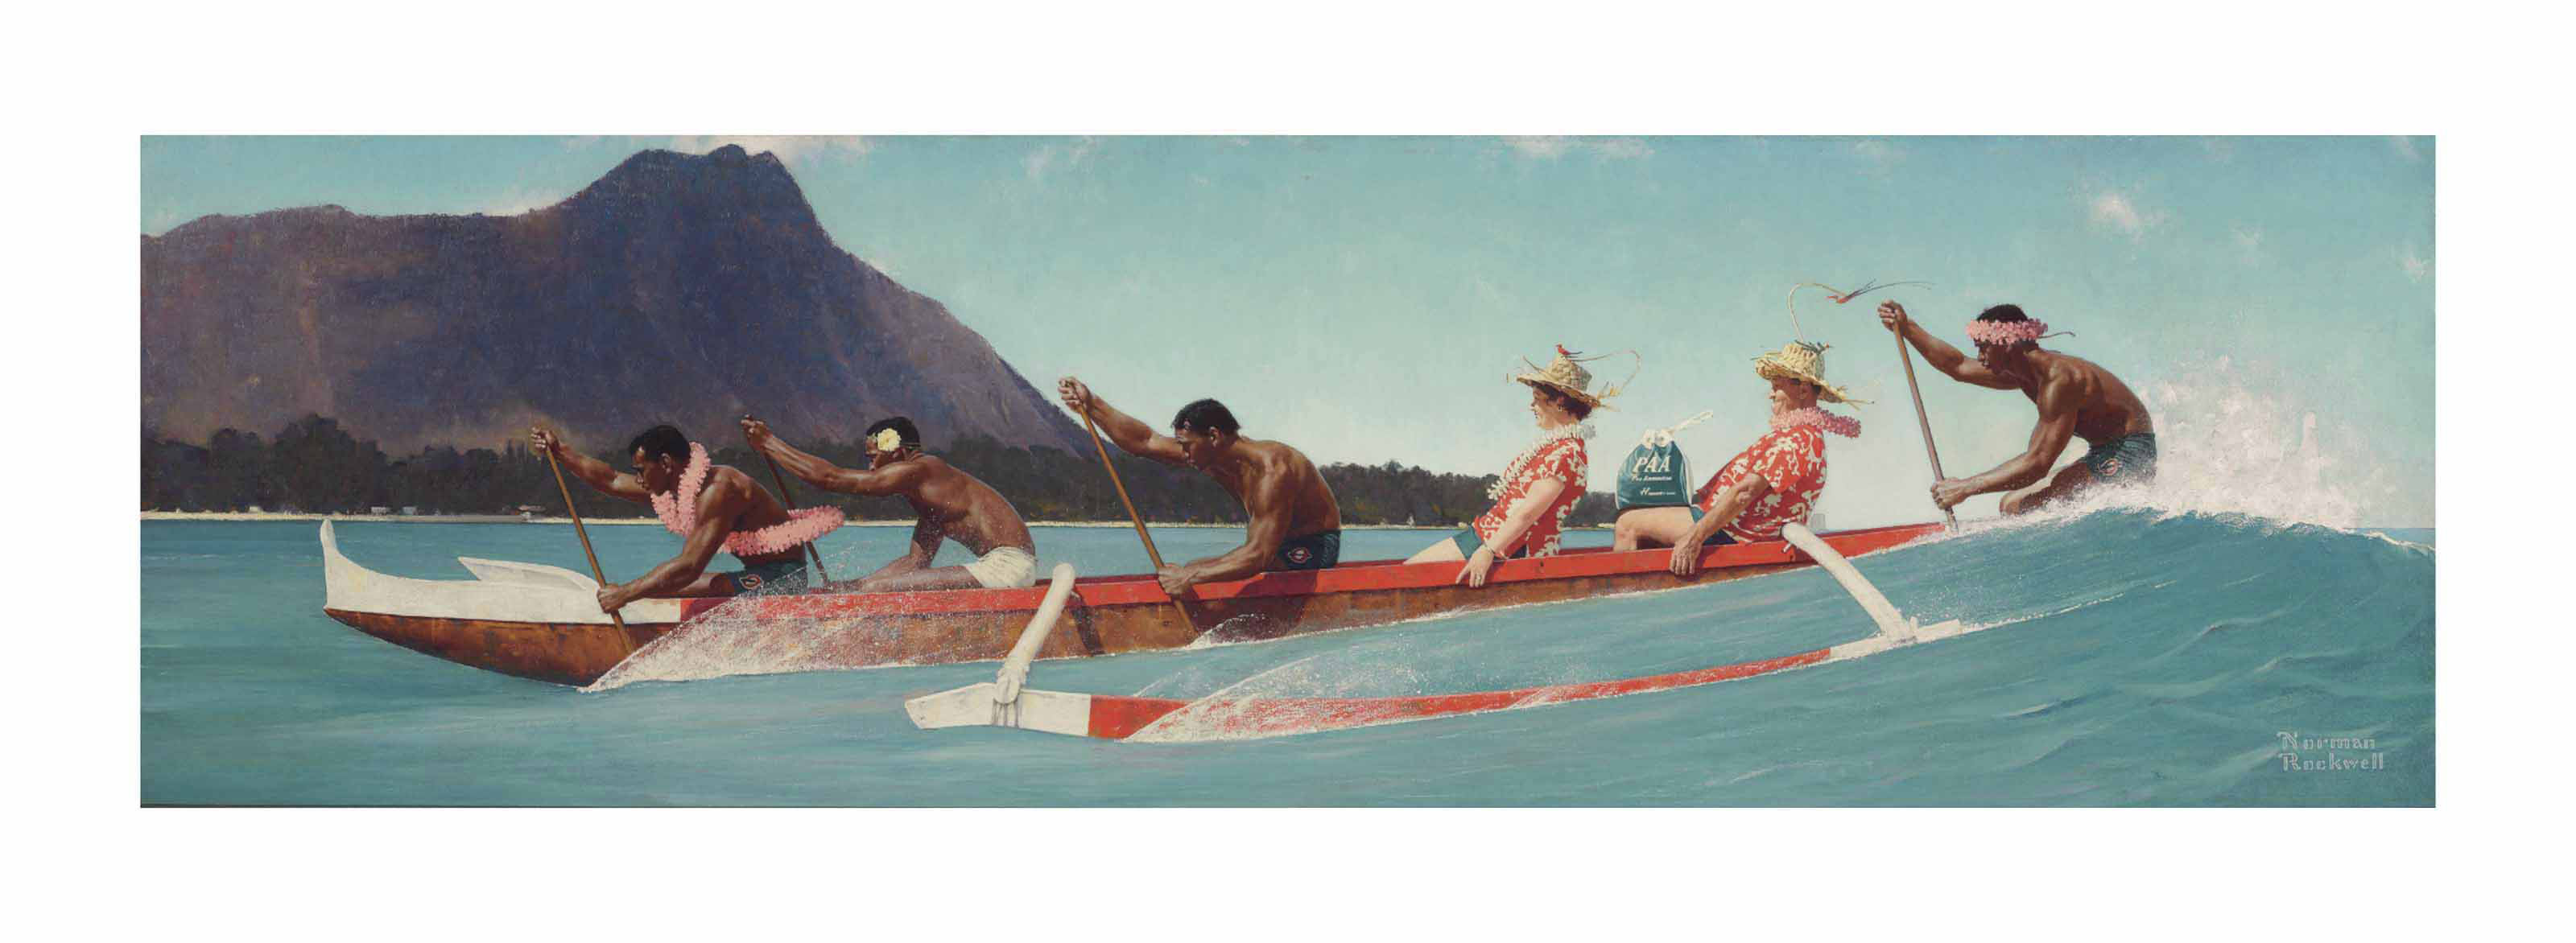 The Thing to Do With Life is Live It! (Outrigger Canoe)